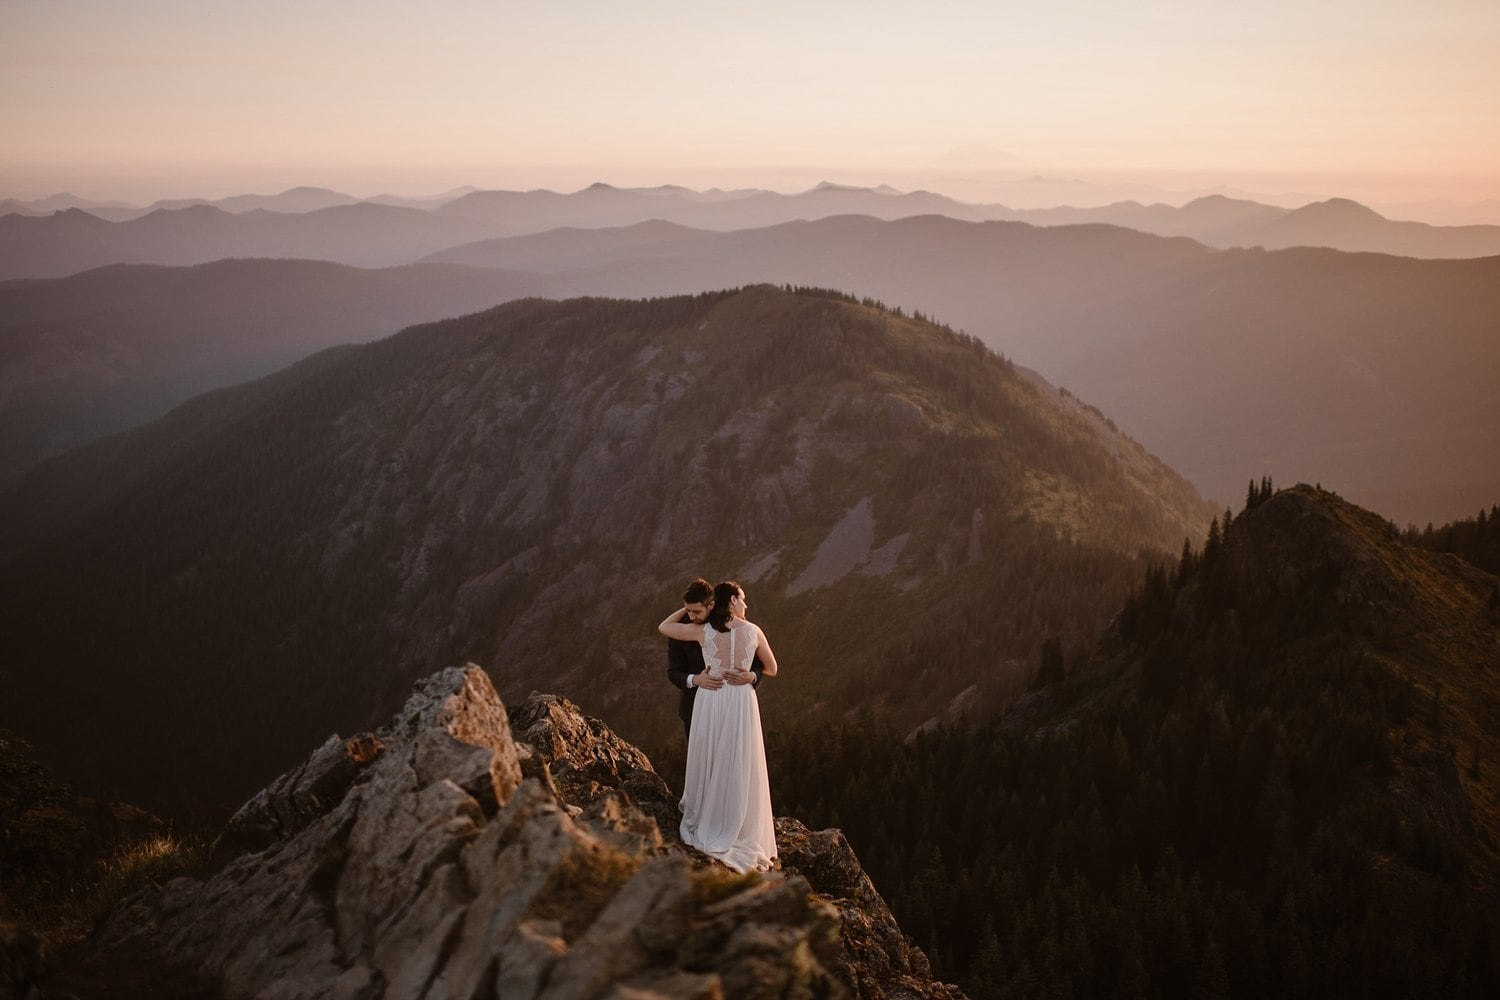 Bride and groom embrace on top of a mountain during their adventure elopement.